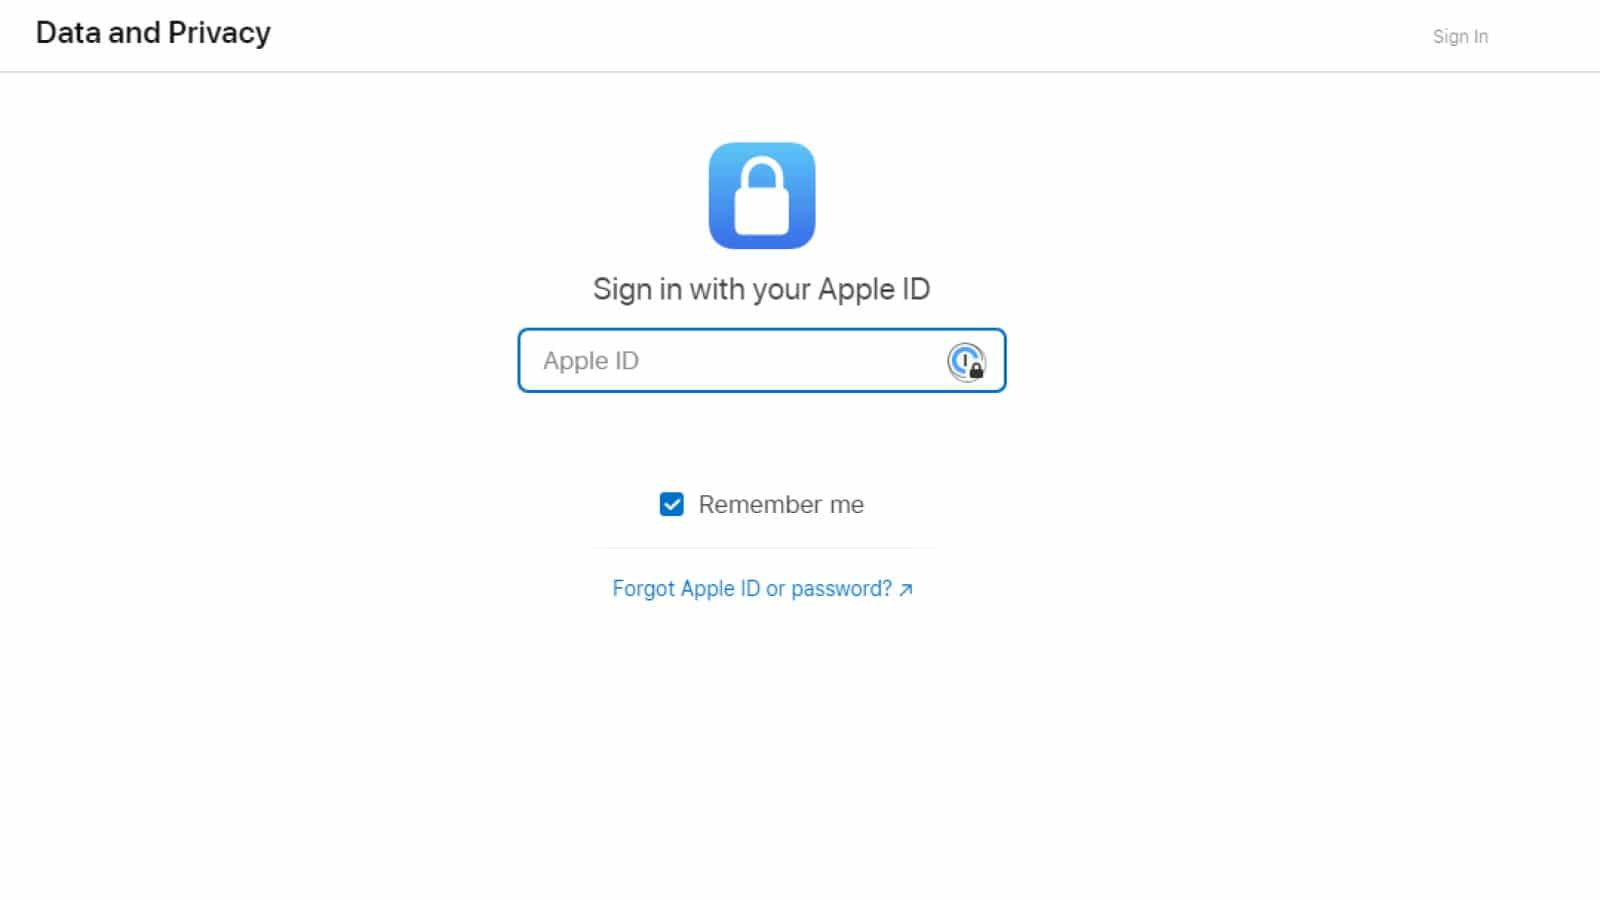 apple privacy webpage sign in